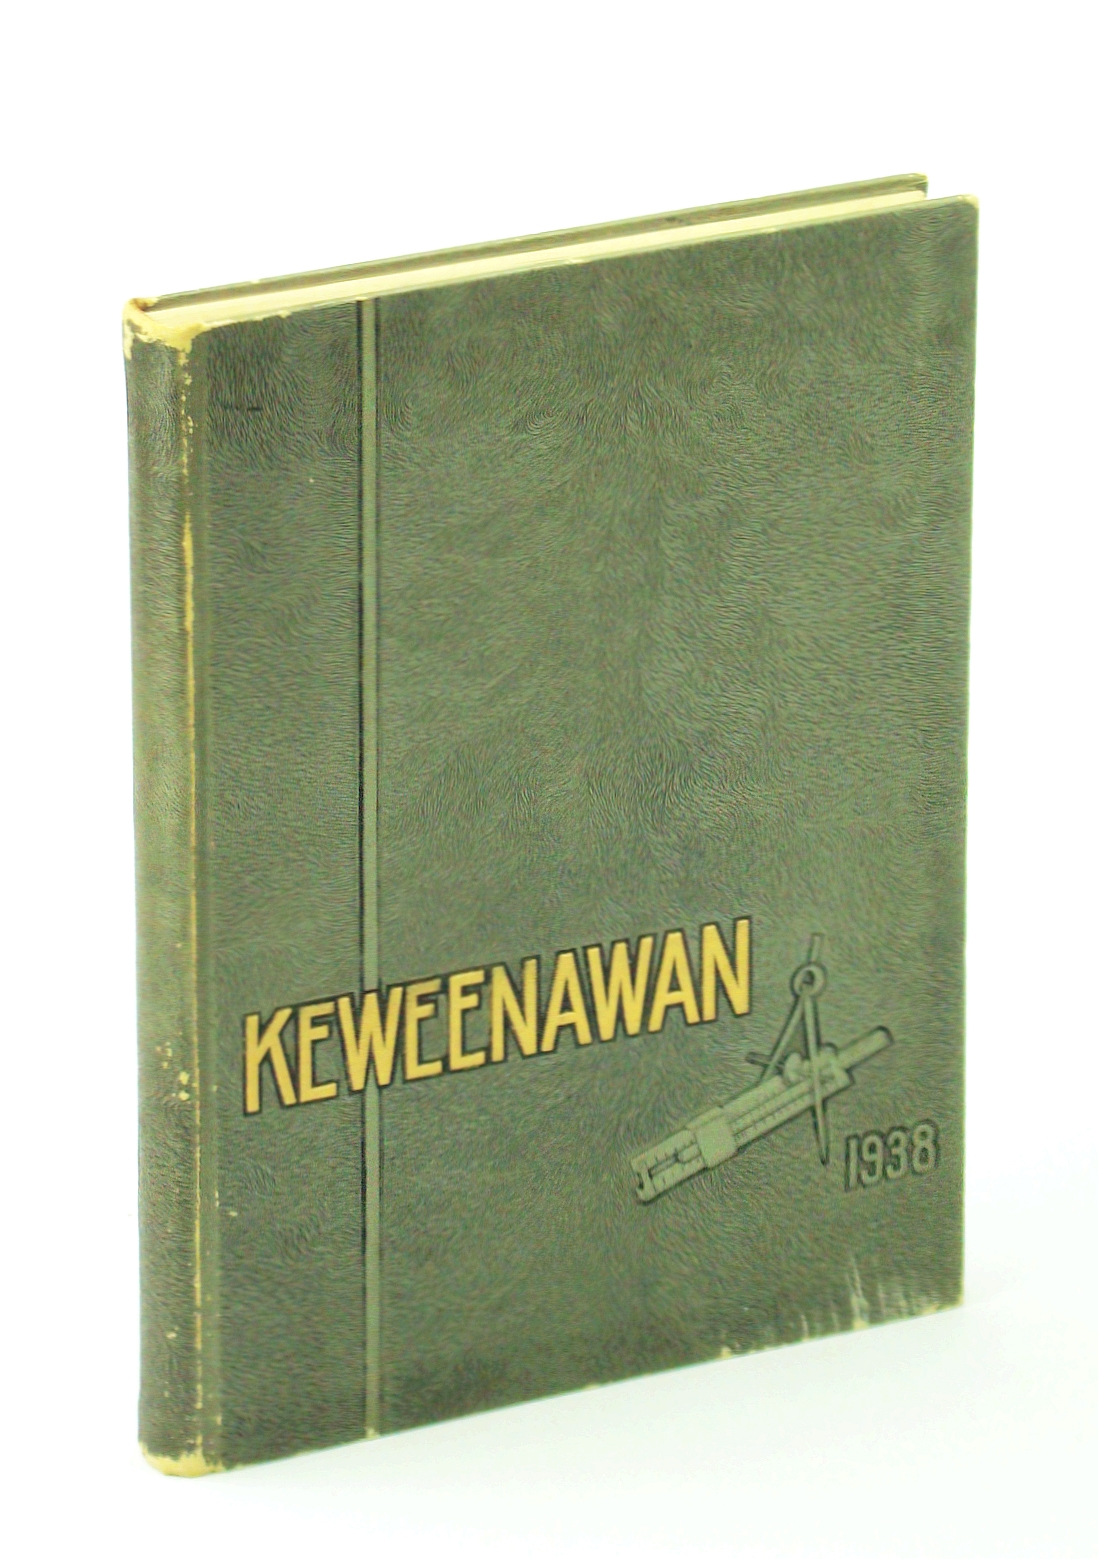 Image for Keweenawan 1938 - Yearbook [Year Book] of the Michigan College of Mining and Technology, Houghton + Michigan